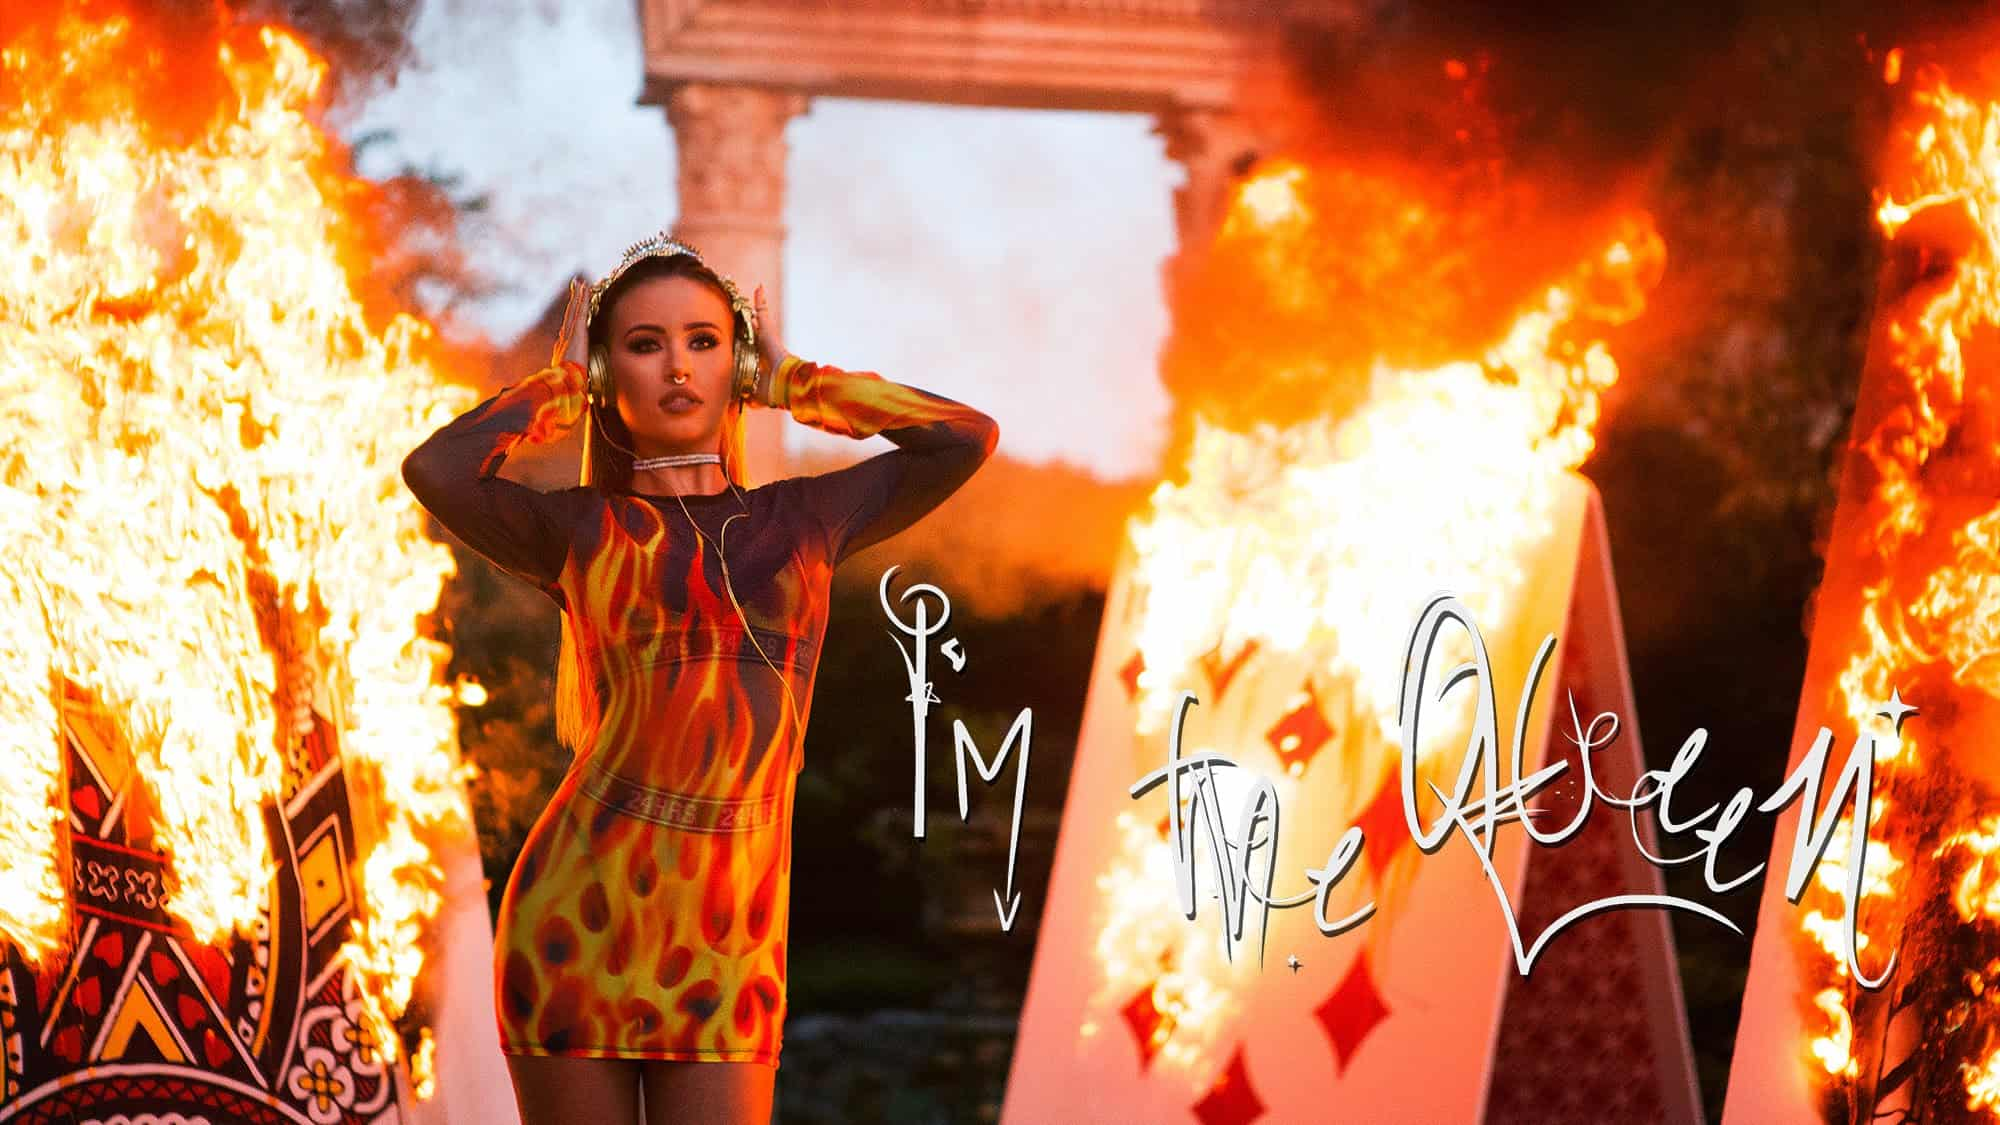 Gery-Nikol - I'm The Queen 2016 download mp3